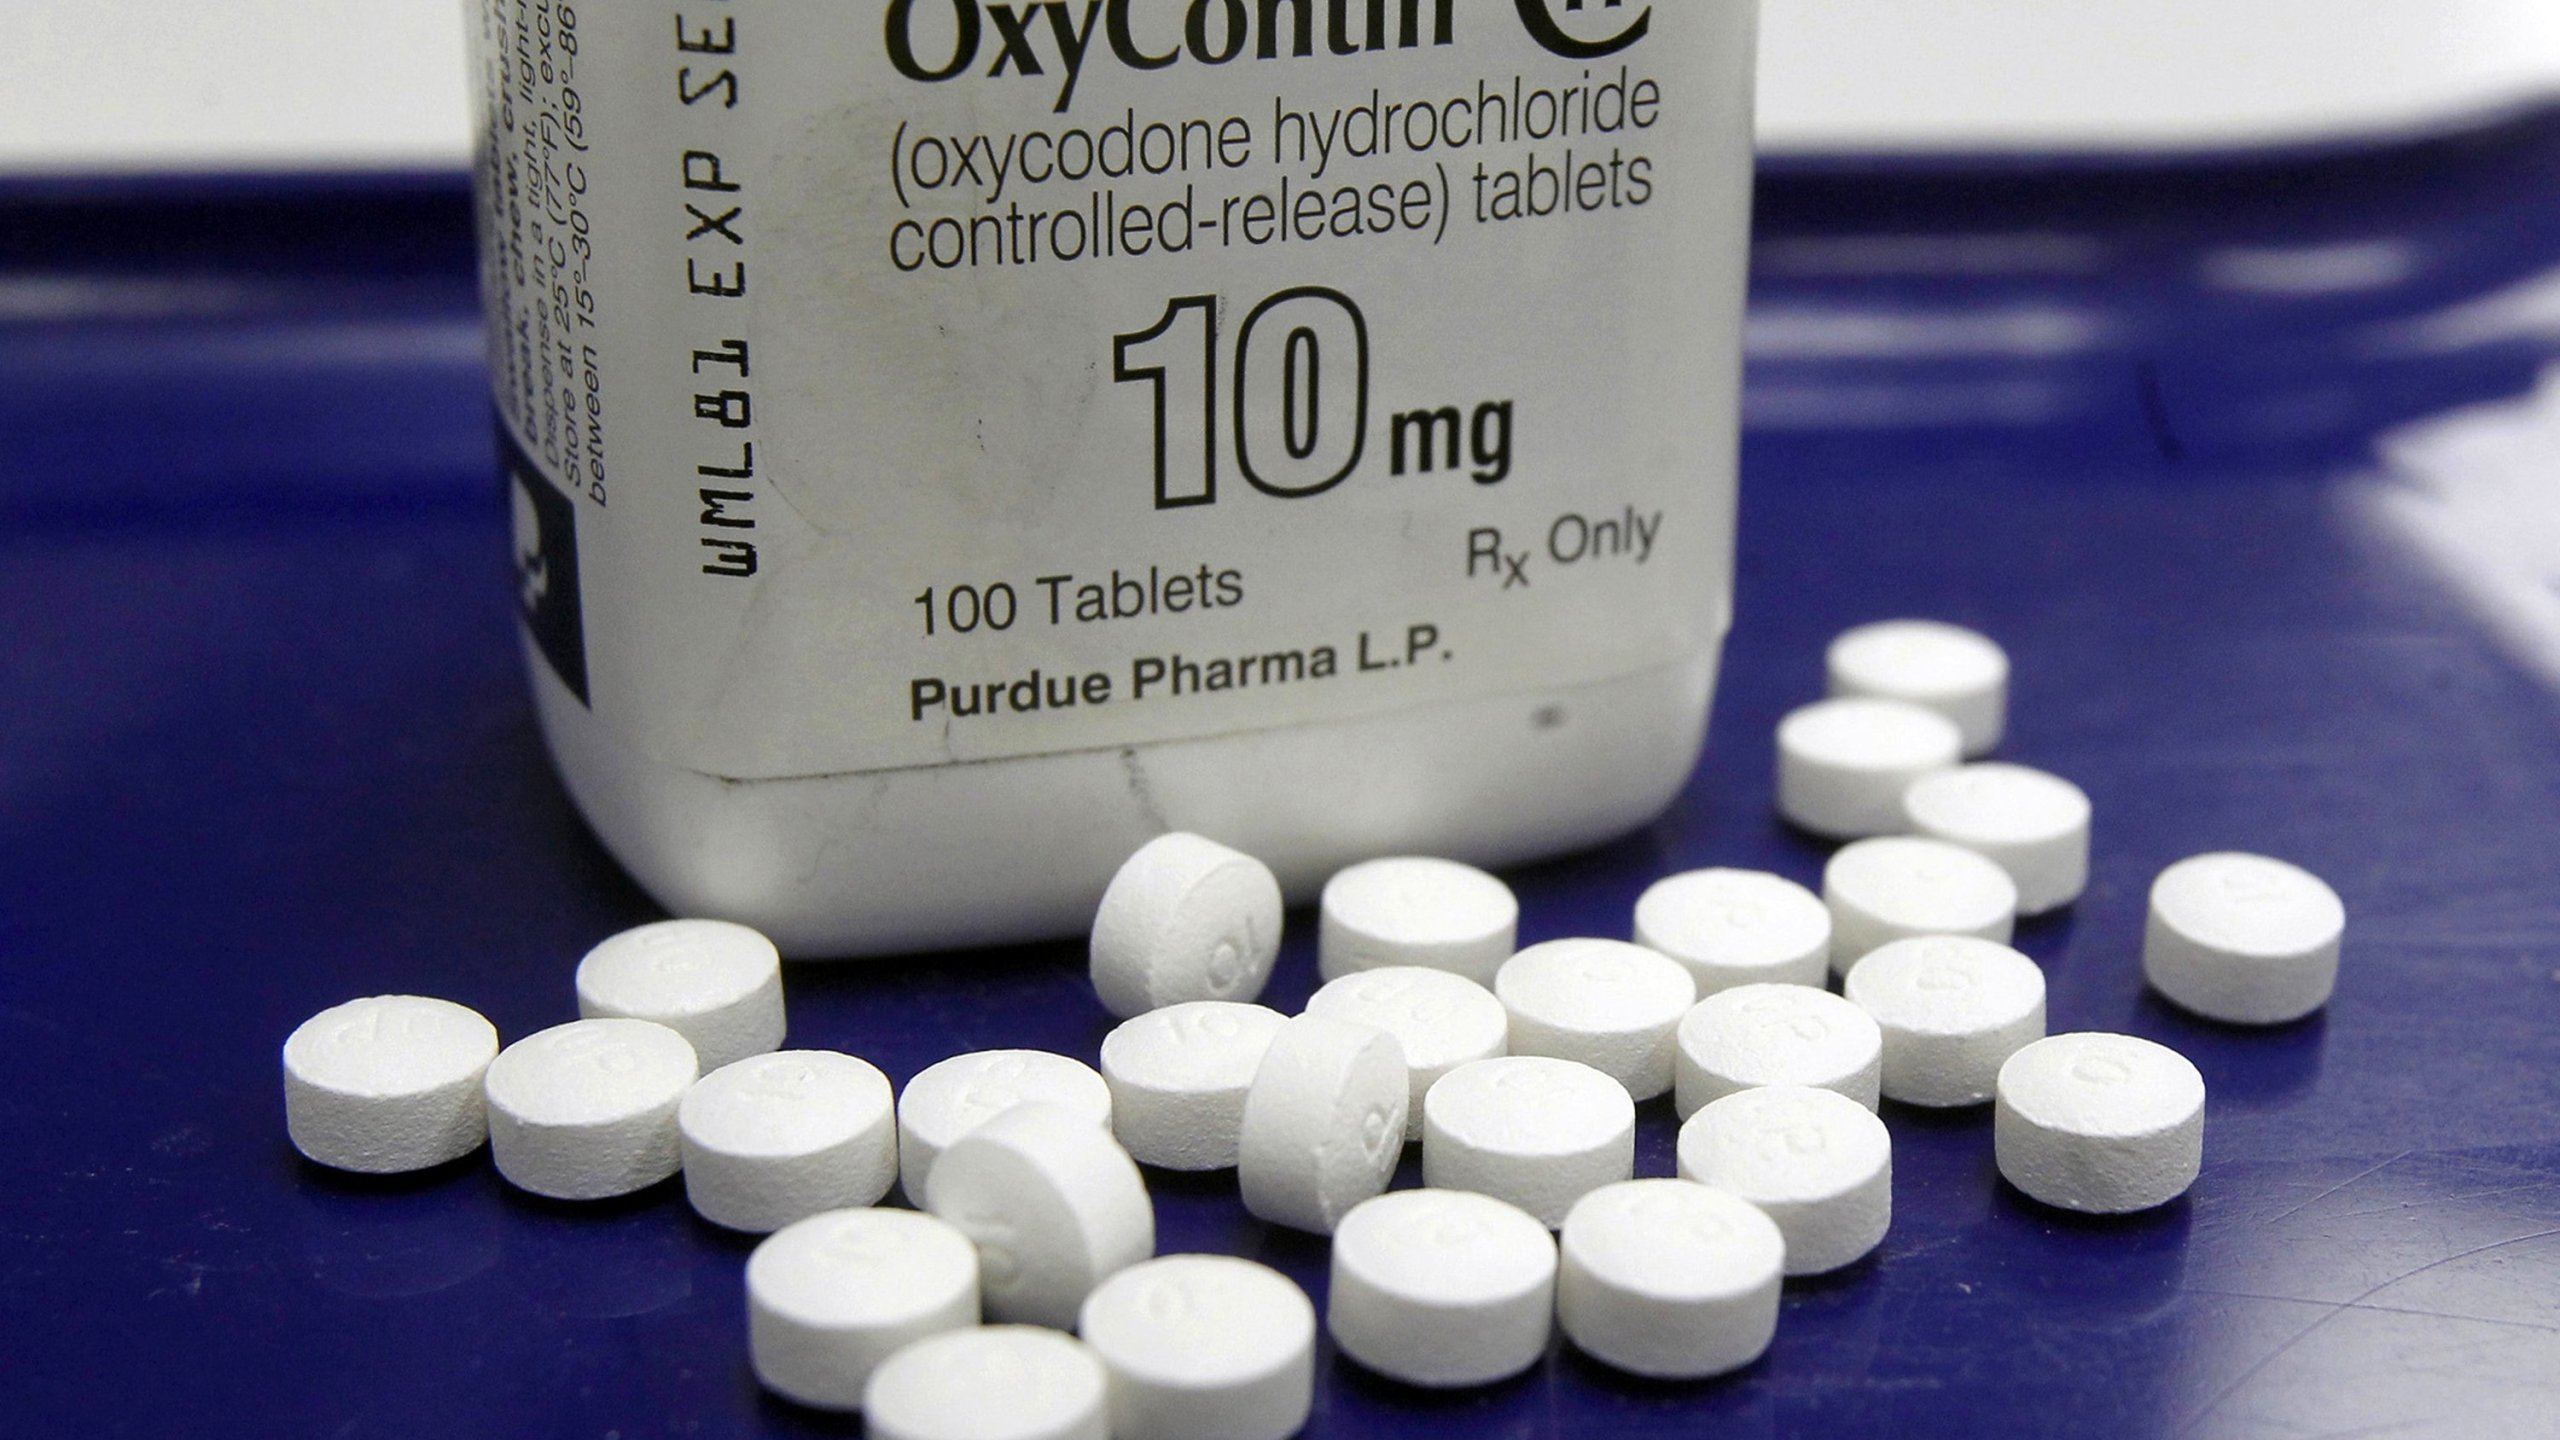 OxyContin pills are seen in this undated photo obtained by CNN.